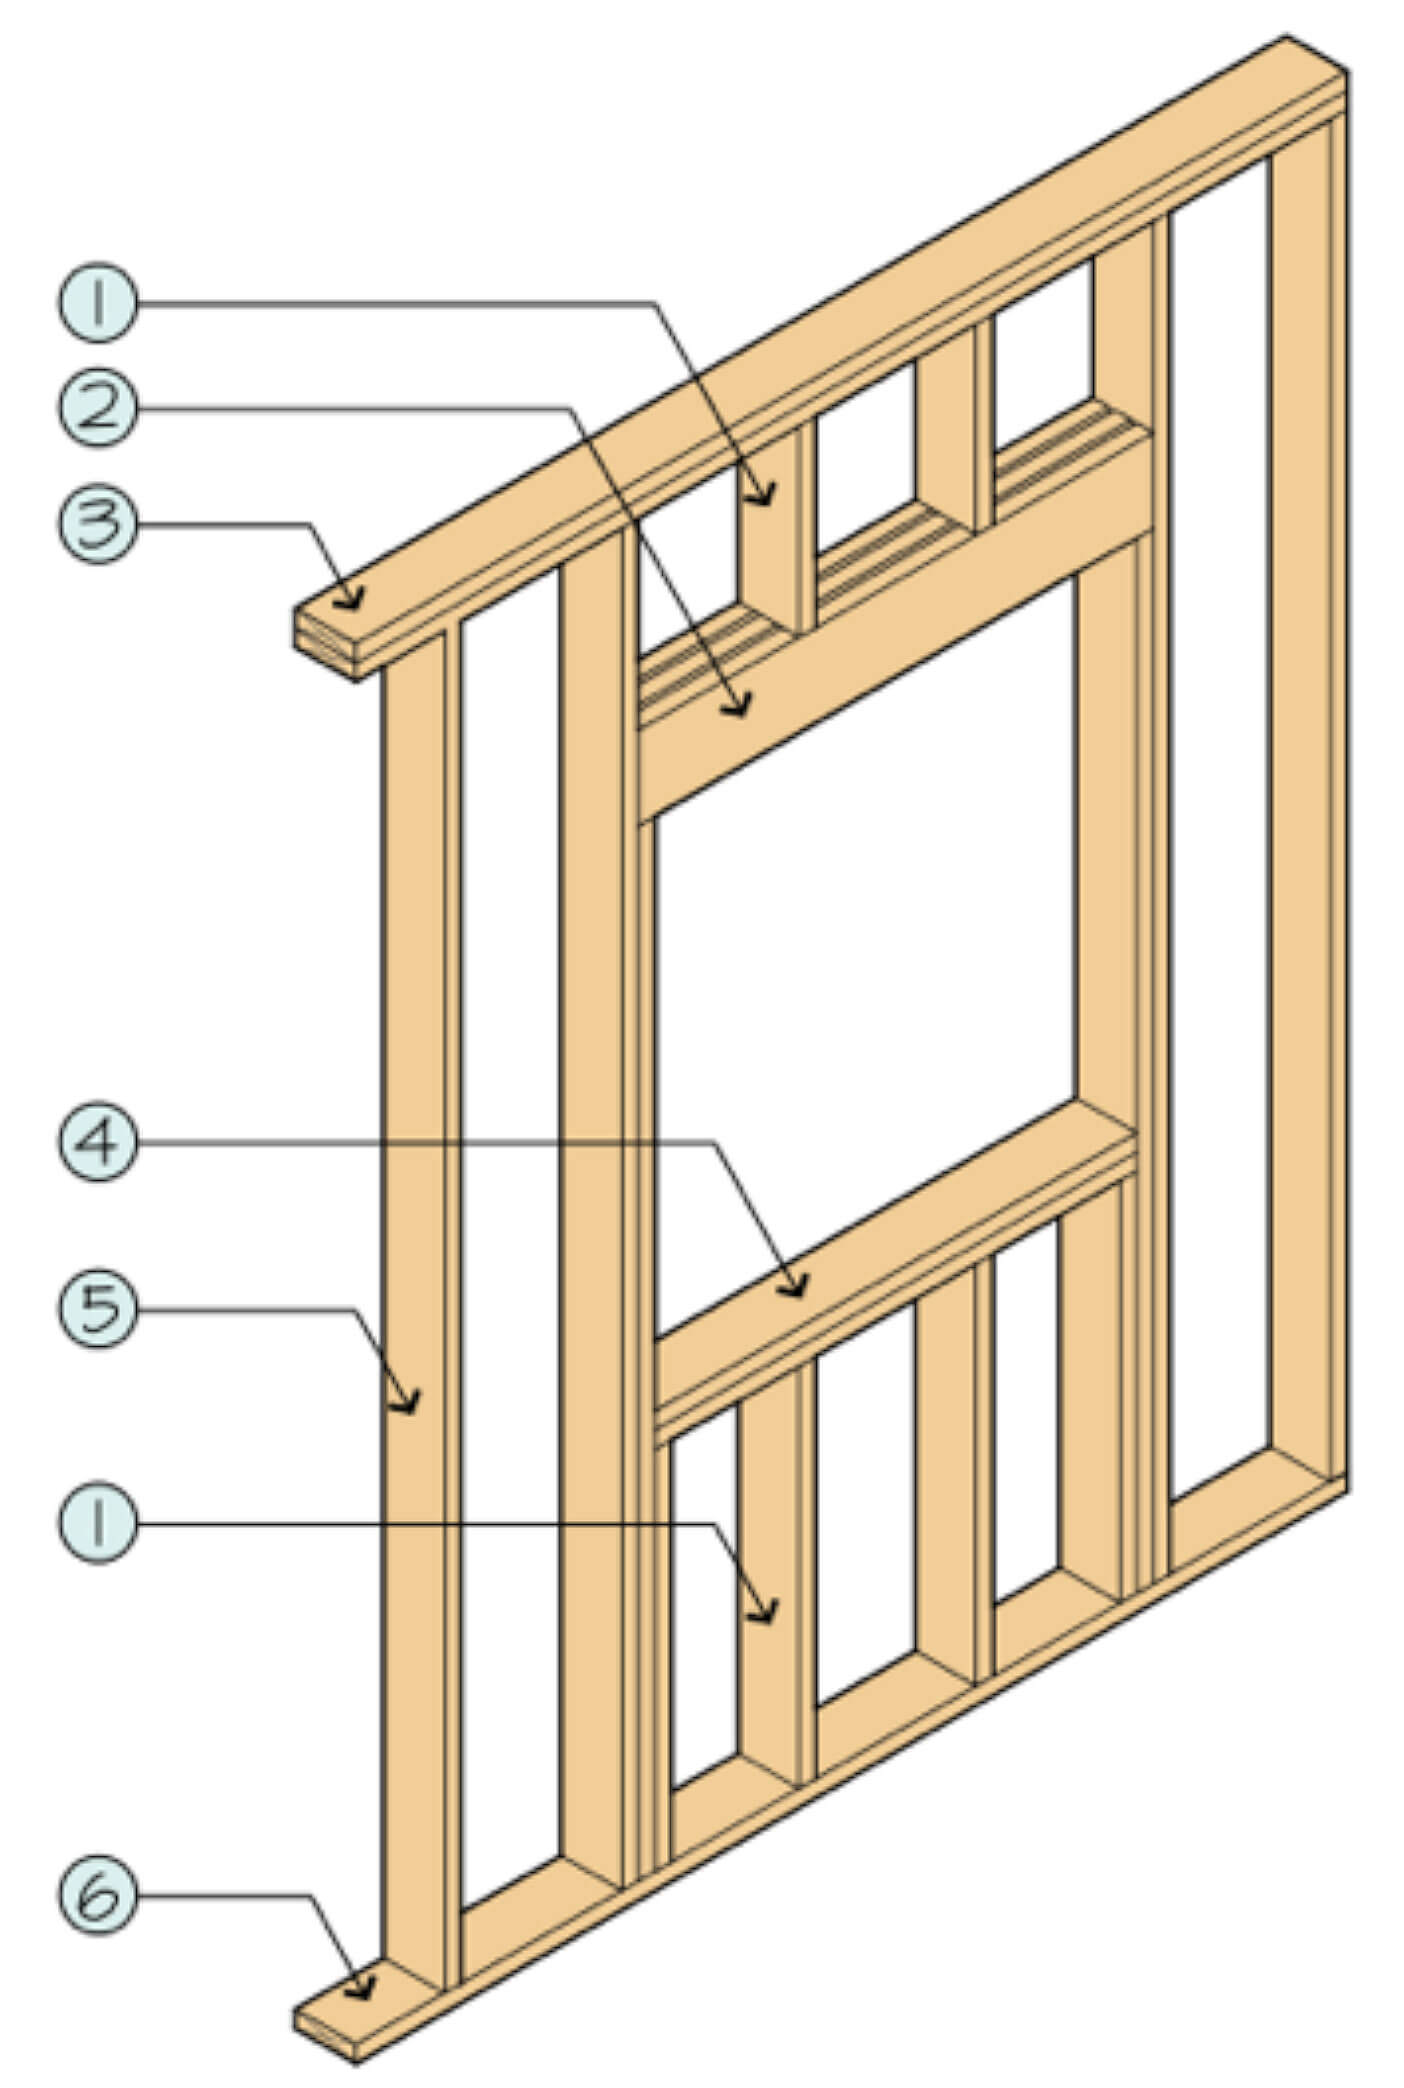 How to install a window or service door in your shed garden shed resources and helpful guides How to replace an exterior window